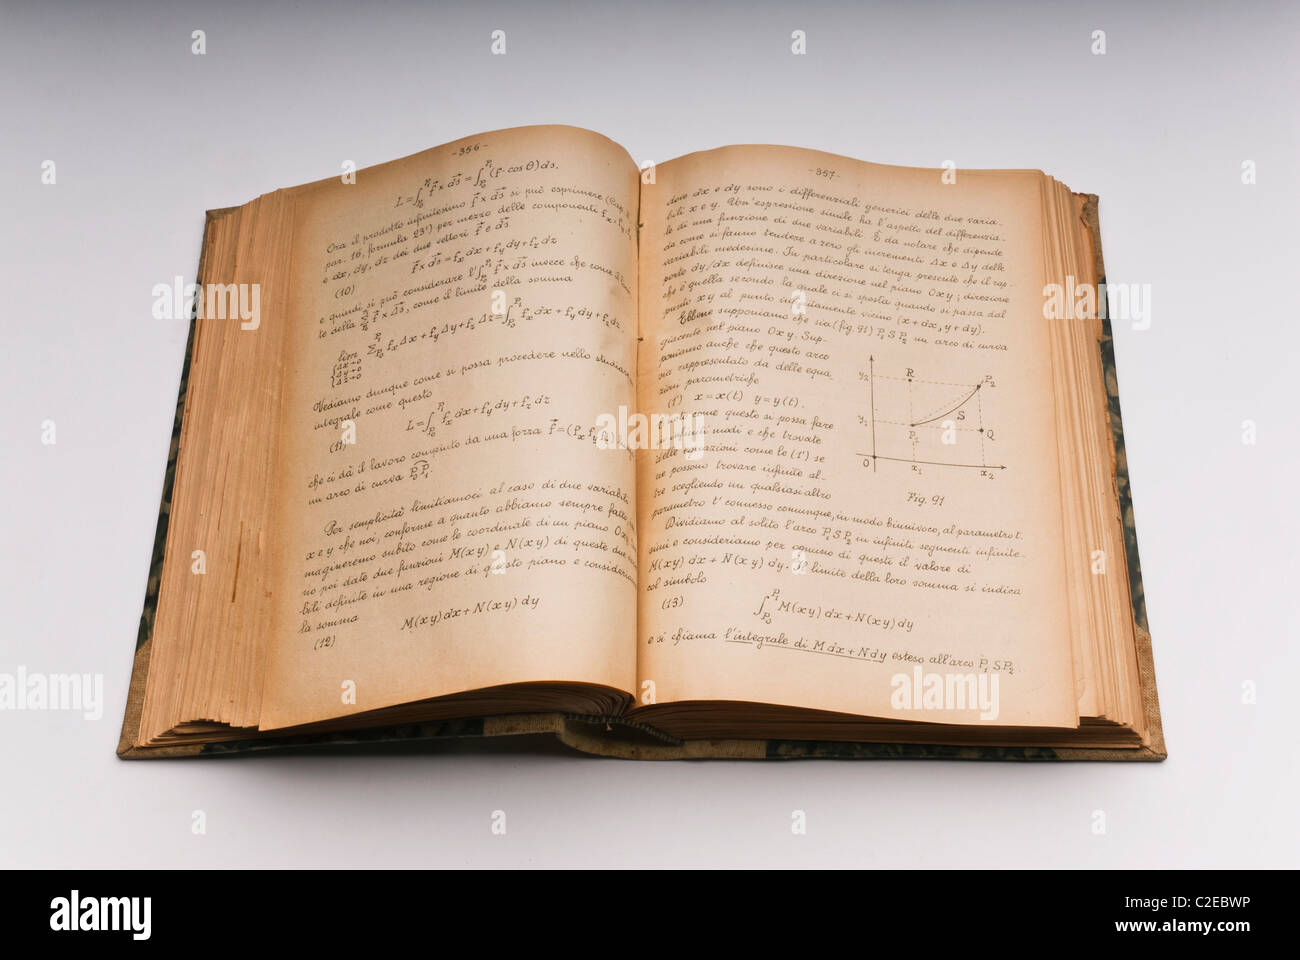 A wide open old hand-written book of physics with yellowed pages and calligraphic  typeface - Stock Image